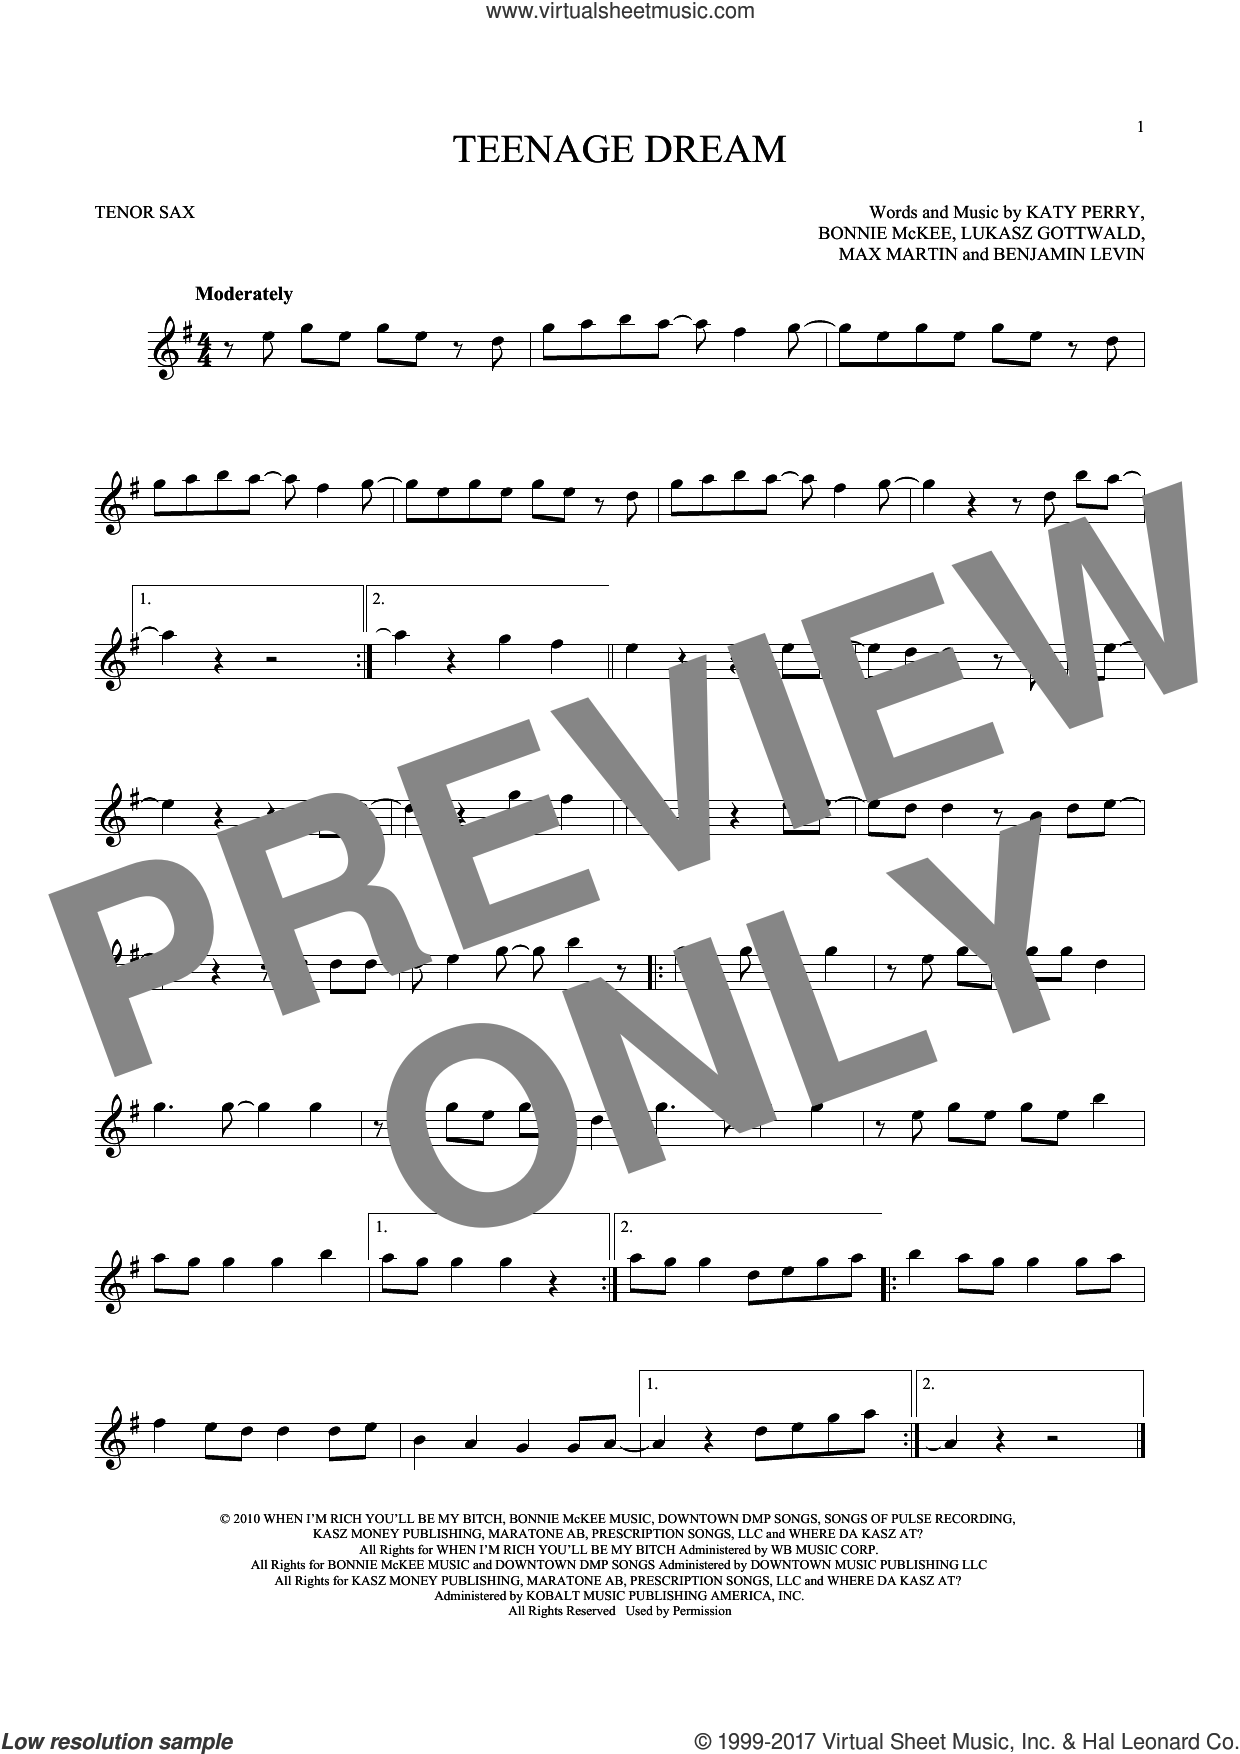 Teenage Dream sheet music for tenor saxophone solo ( Sax) by Max Martin, Benjamin Levin, Bonnie McKee, Katy Perry and Lukasz Gottwald. Score Image Preview.